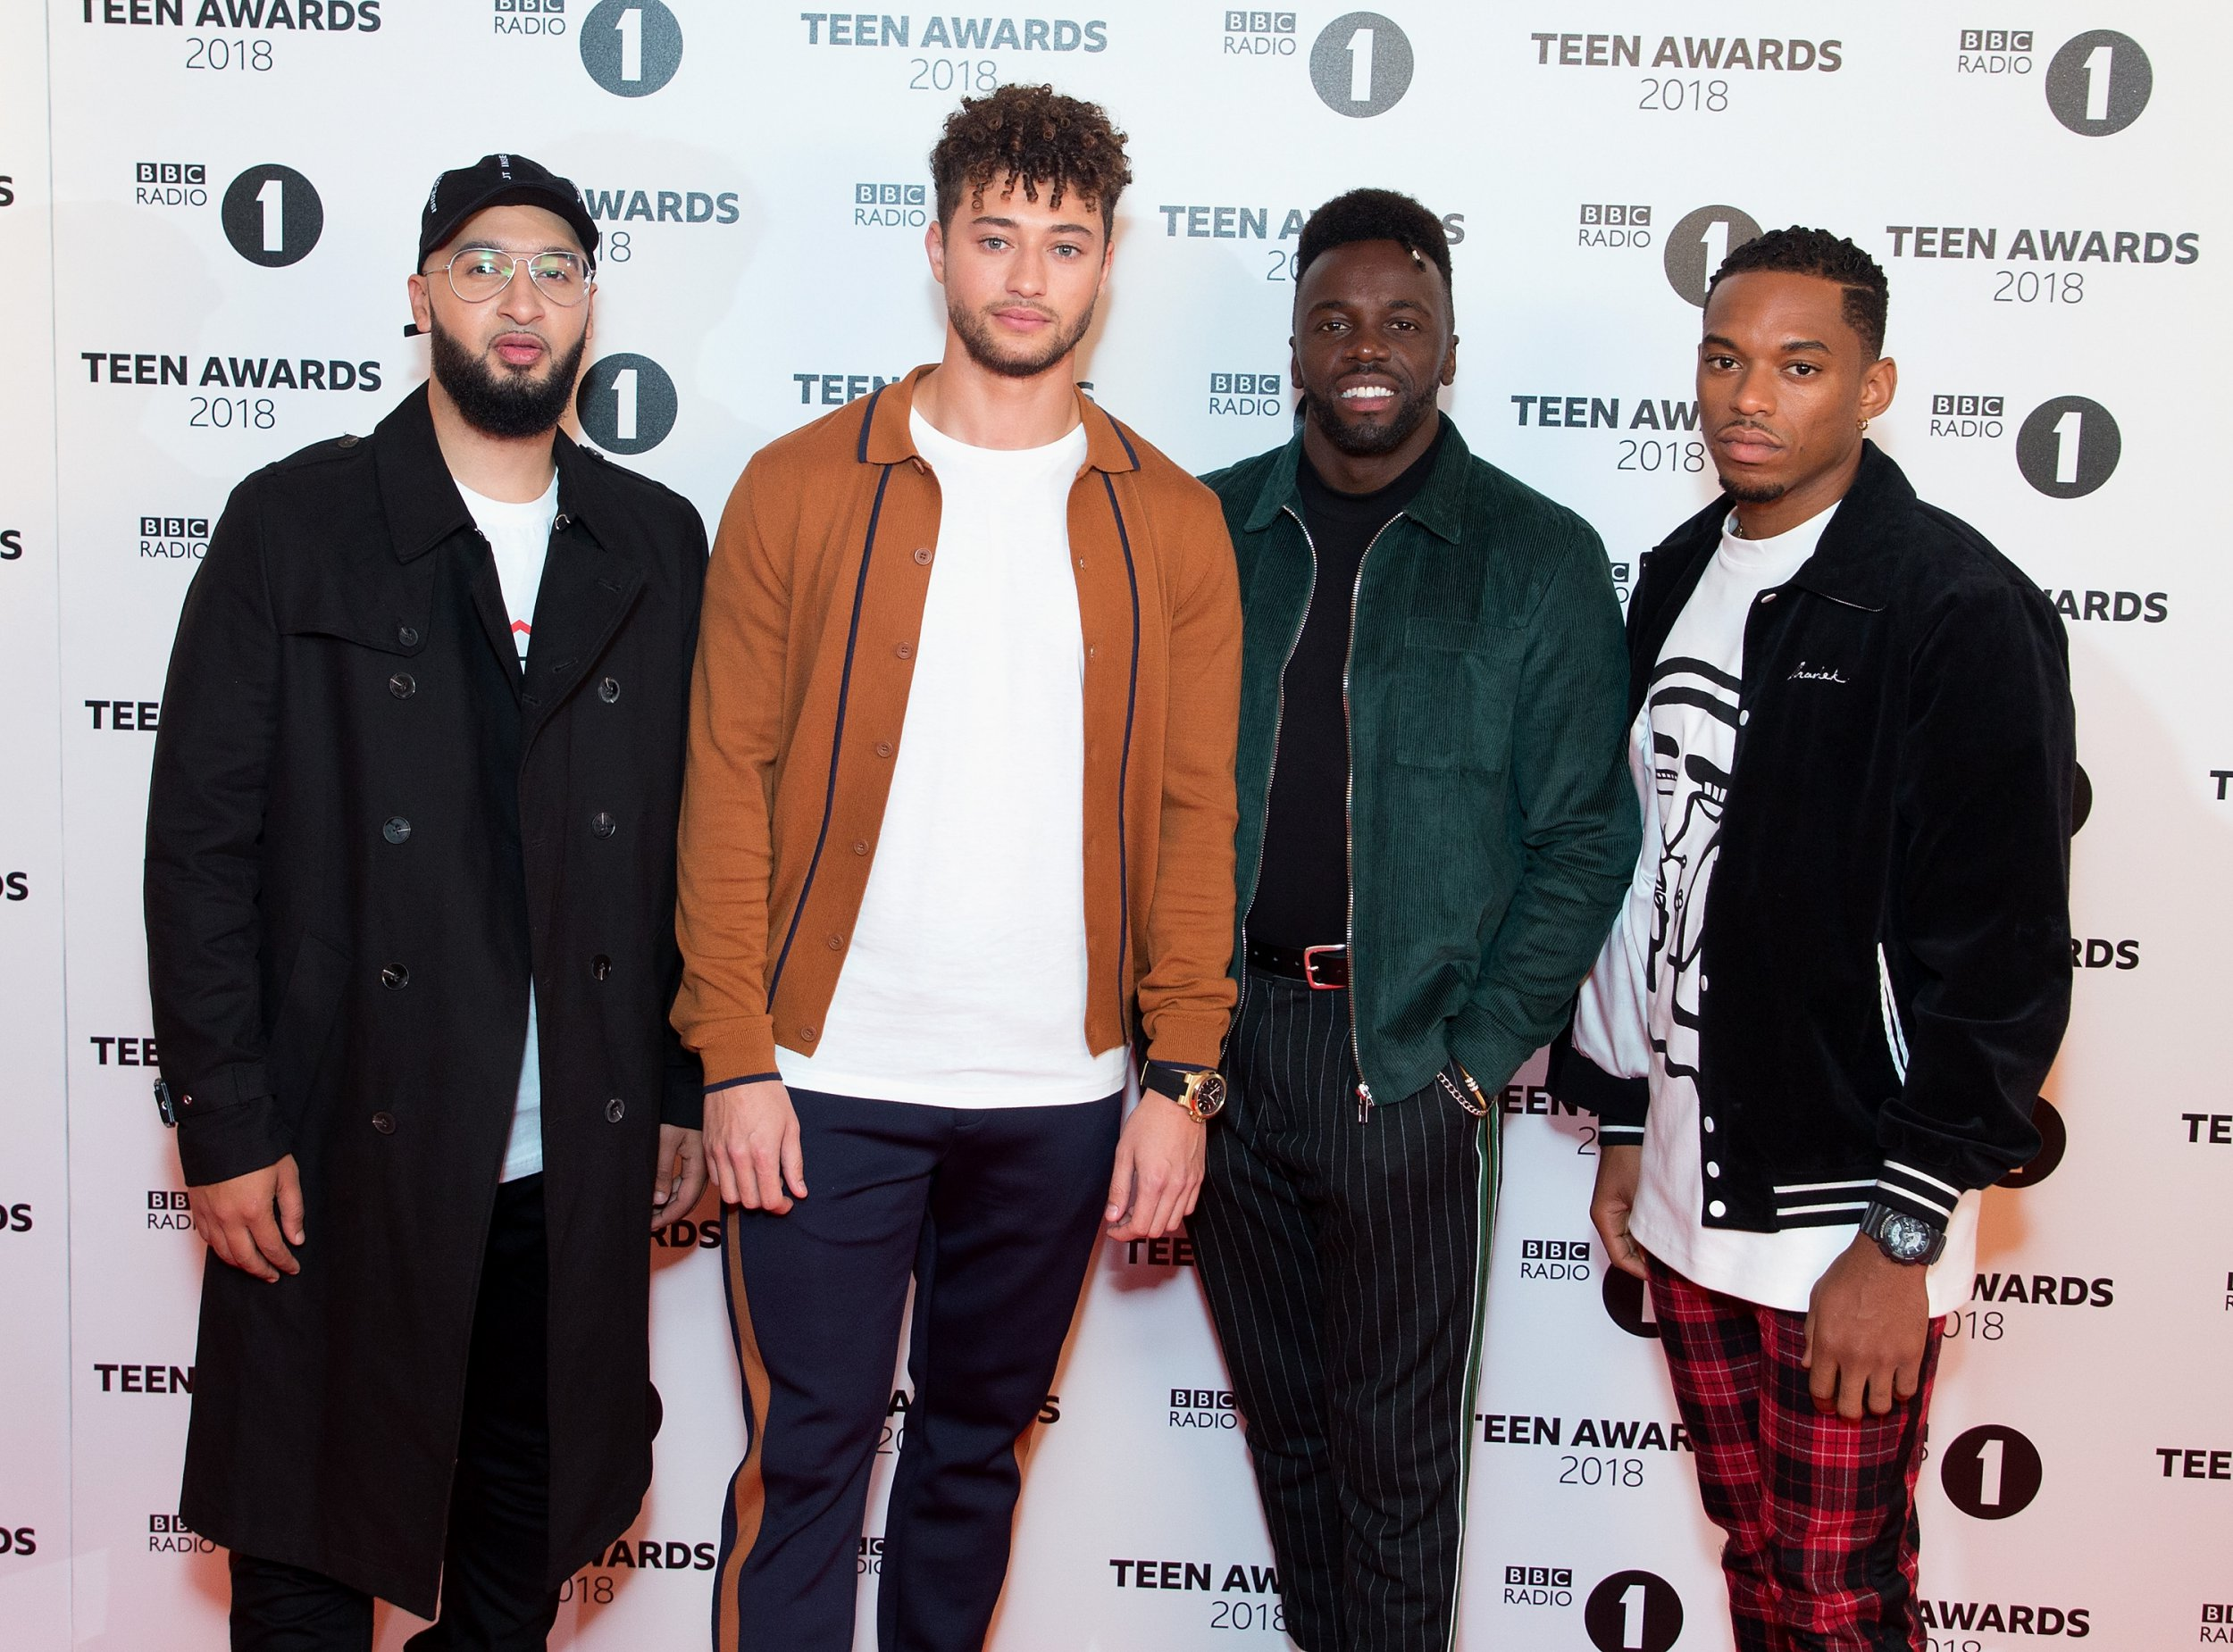 Rak-Su rule out X Factor: All Stars appearance as they reveal dream judging line-up